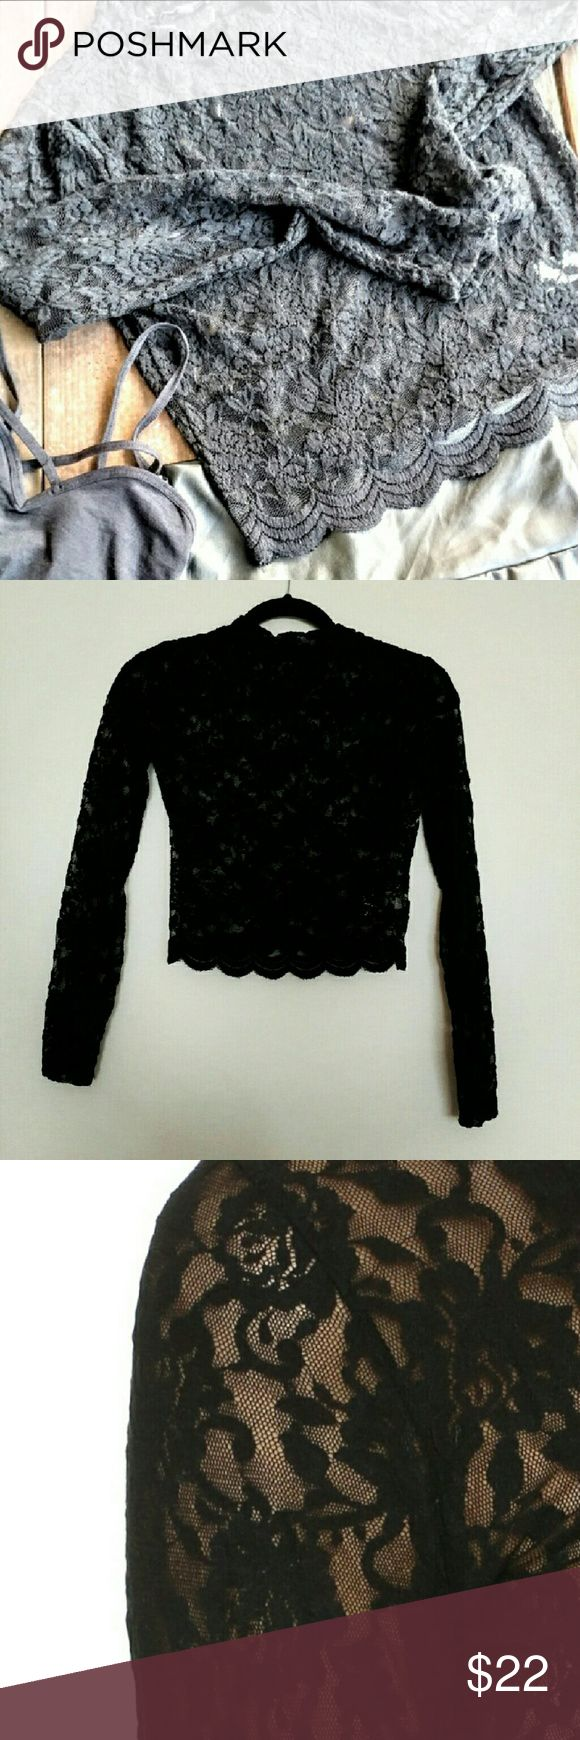 Black crop top by Alquimia Lace, great quality,  Nylons and spandex 22 inches long Alquimia Tops Crop Tops